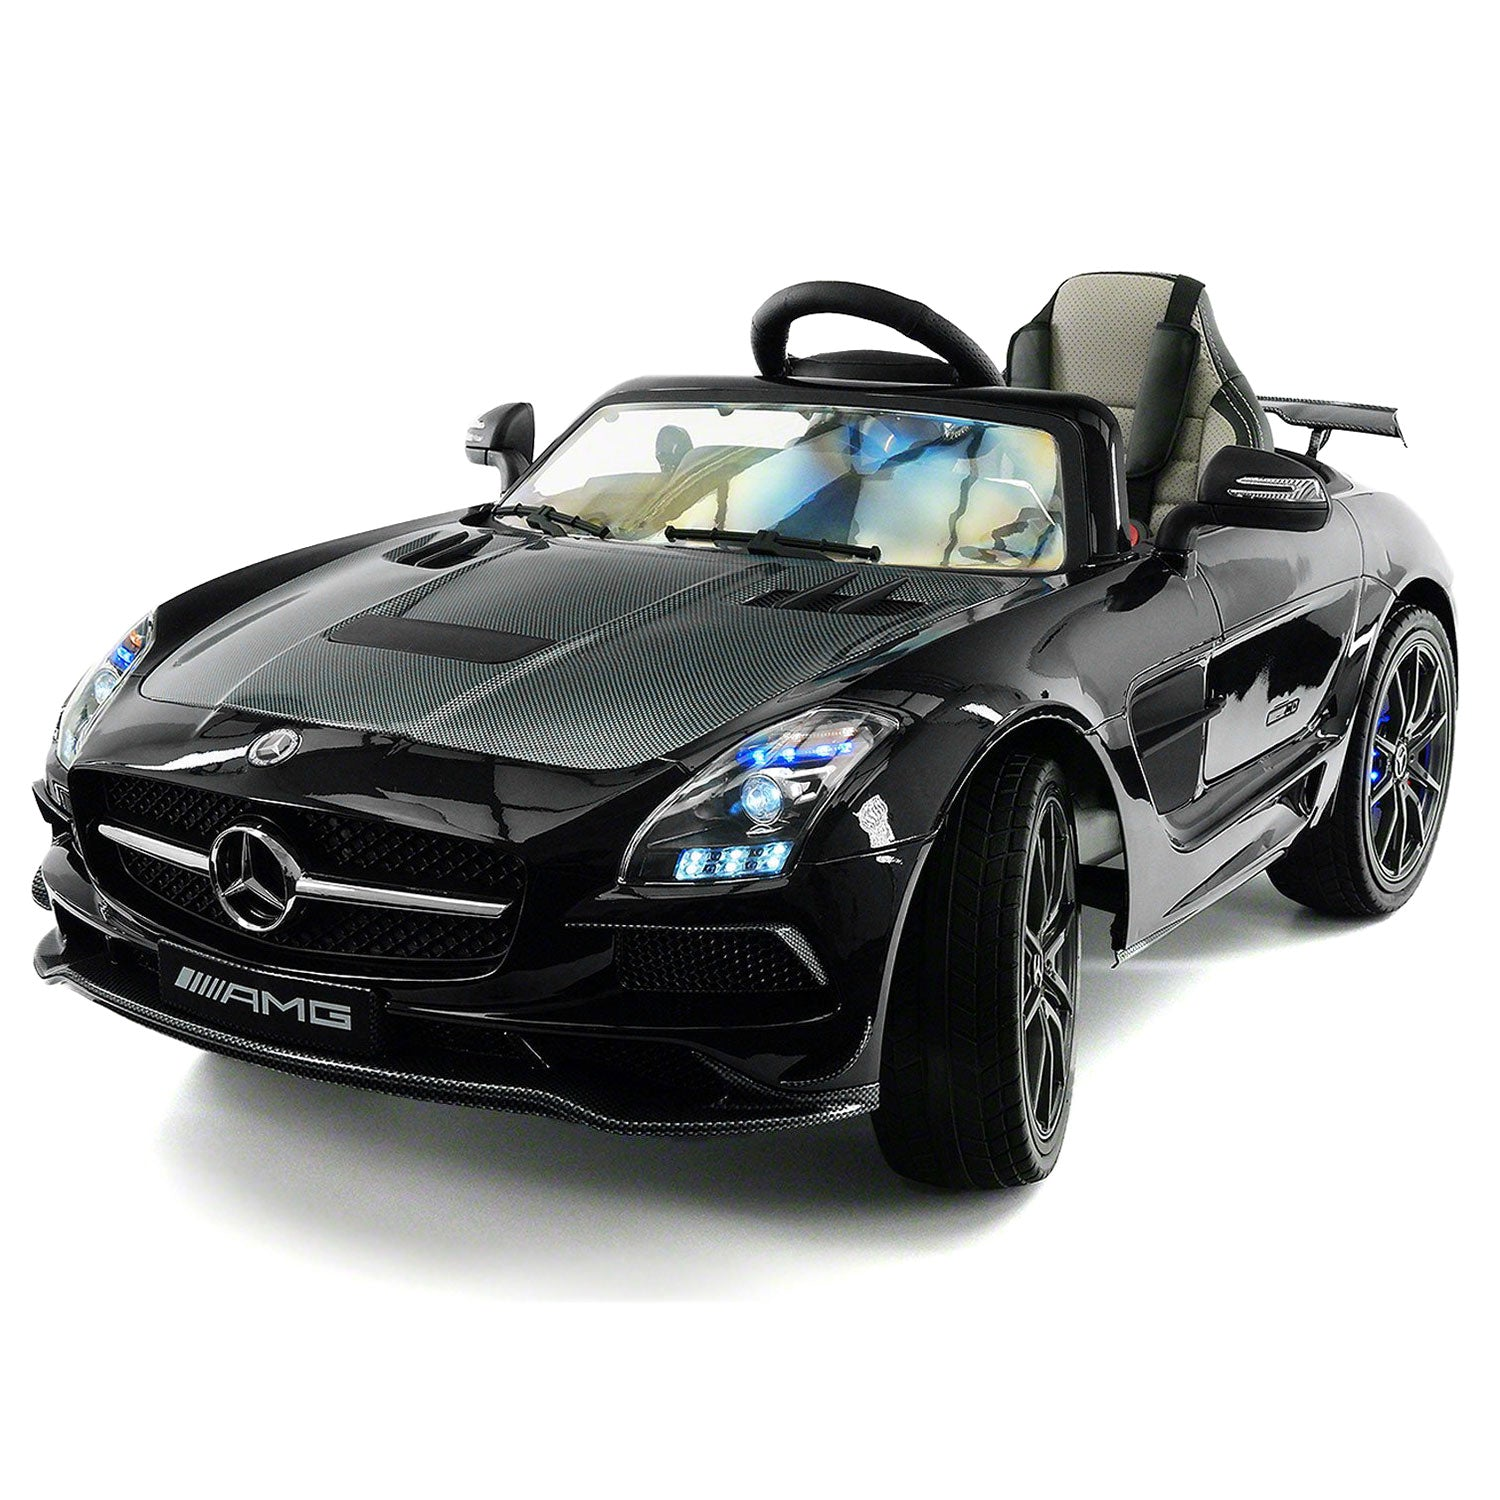 mercedes sls amg final edition 12v kids ride on car with parental remote black metallic